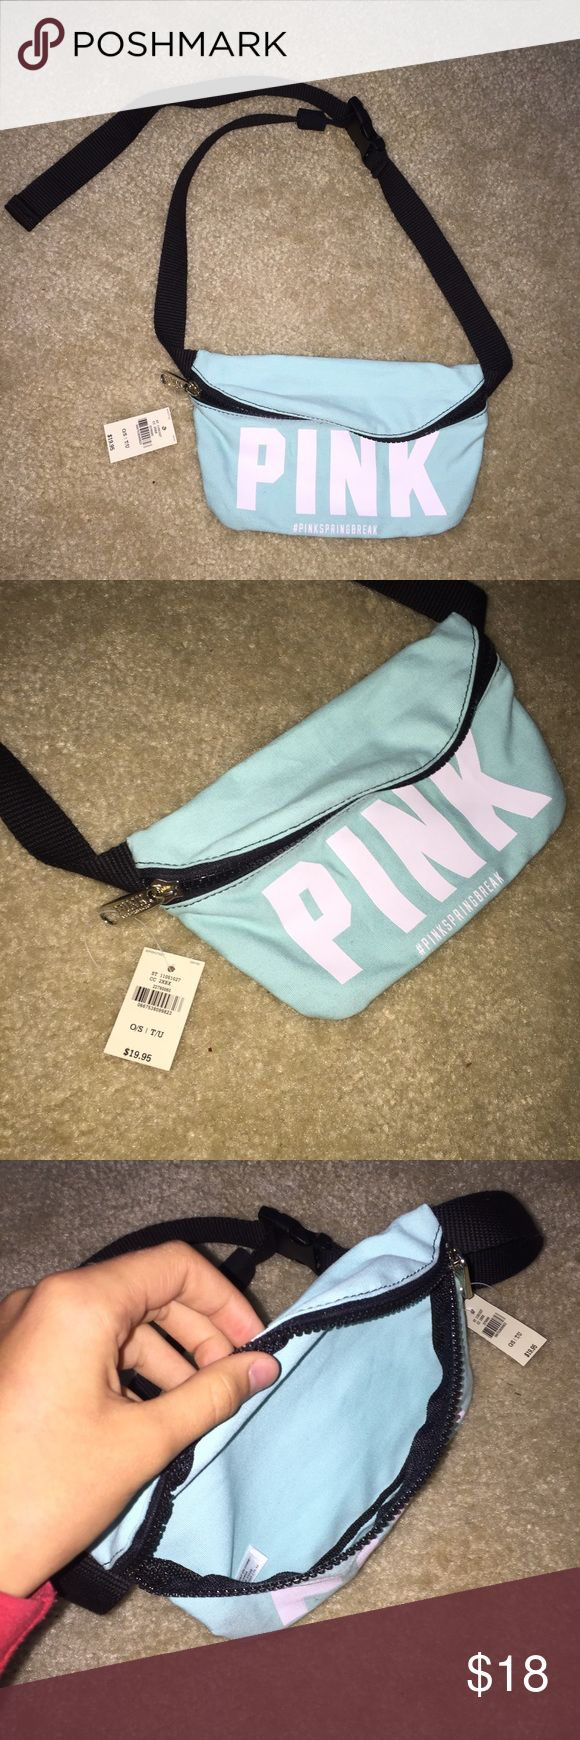 Fanny pack A super cute fanny pack by pink! Light turquoise. Tags still on!!!!! PINK Victoria's Secret Bags